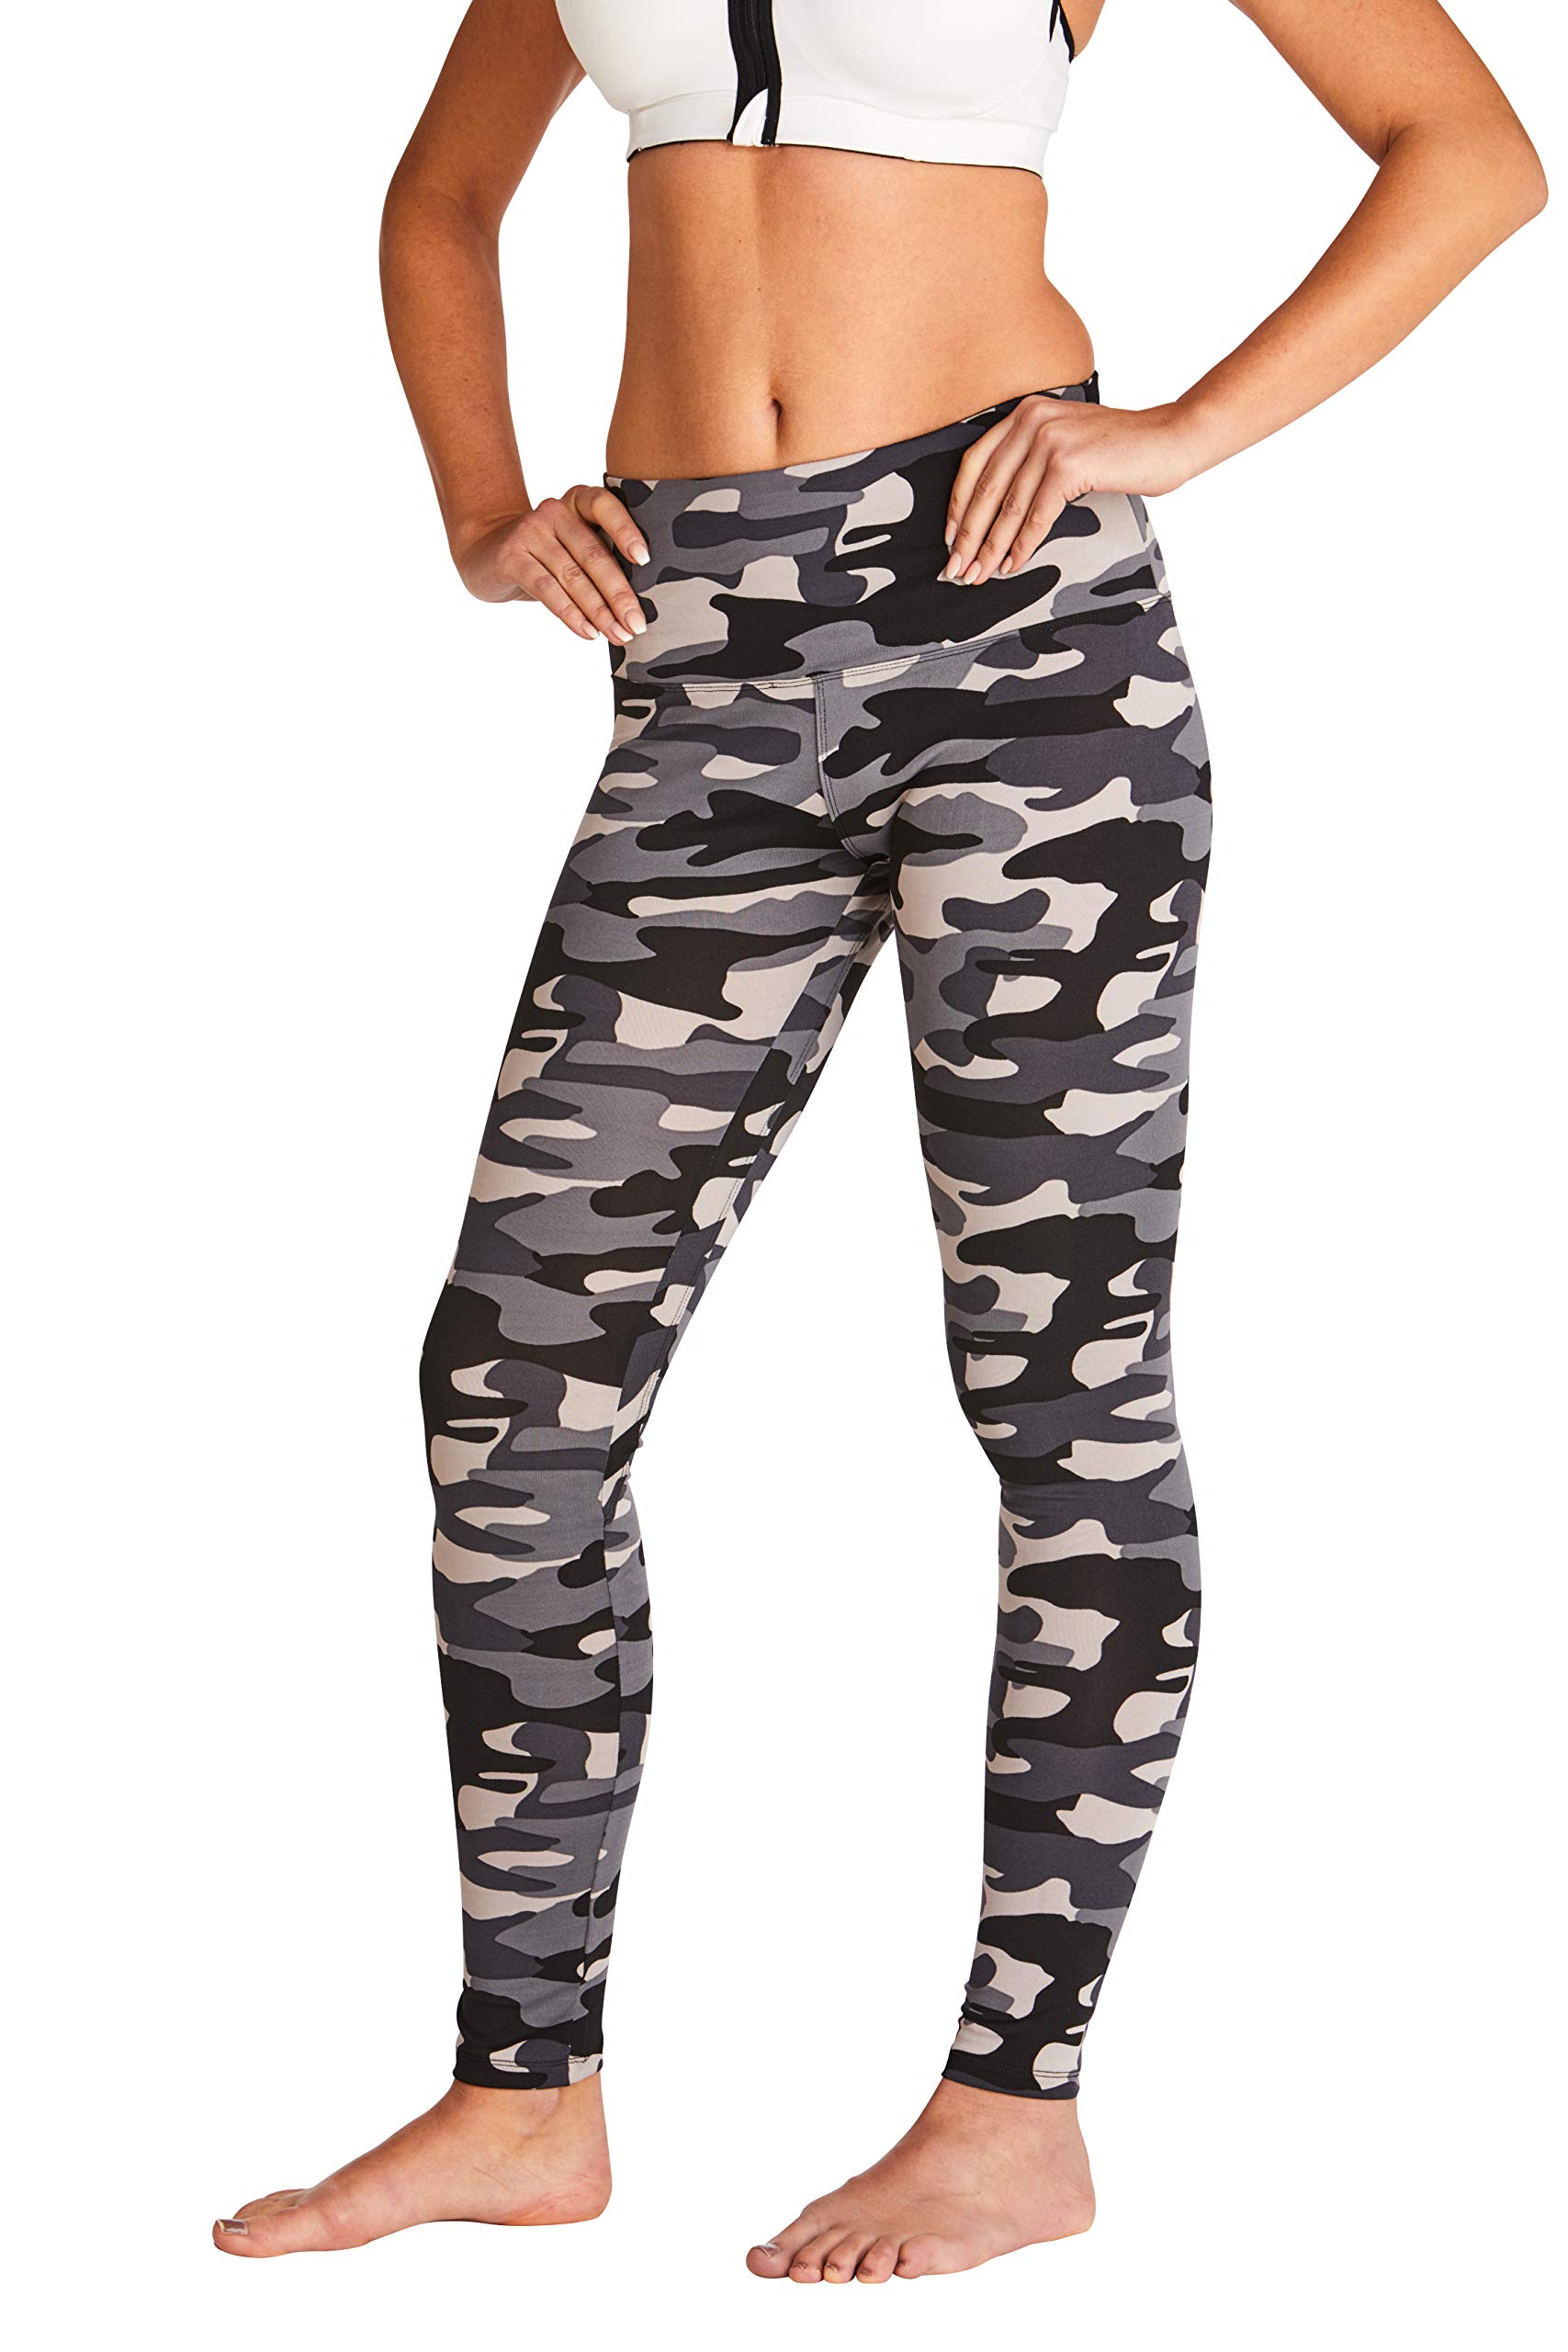 WEST ZERO TWO Leggings-High Rise Yoga Pants with Tummy Control, High Waisted Fitness Workout Activewear, Ankle Length